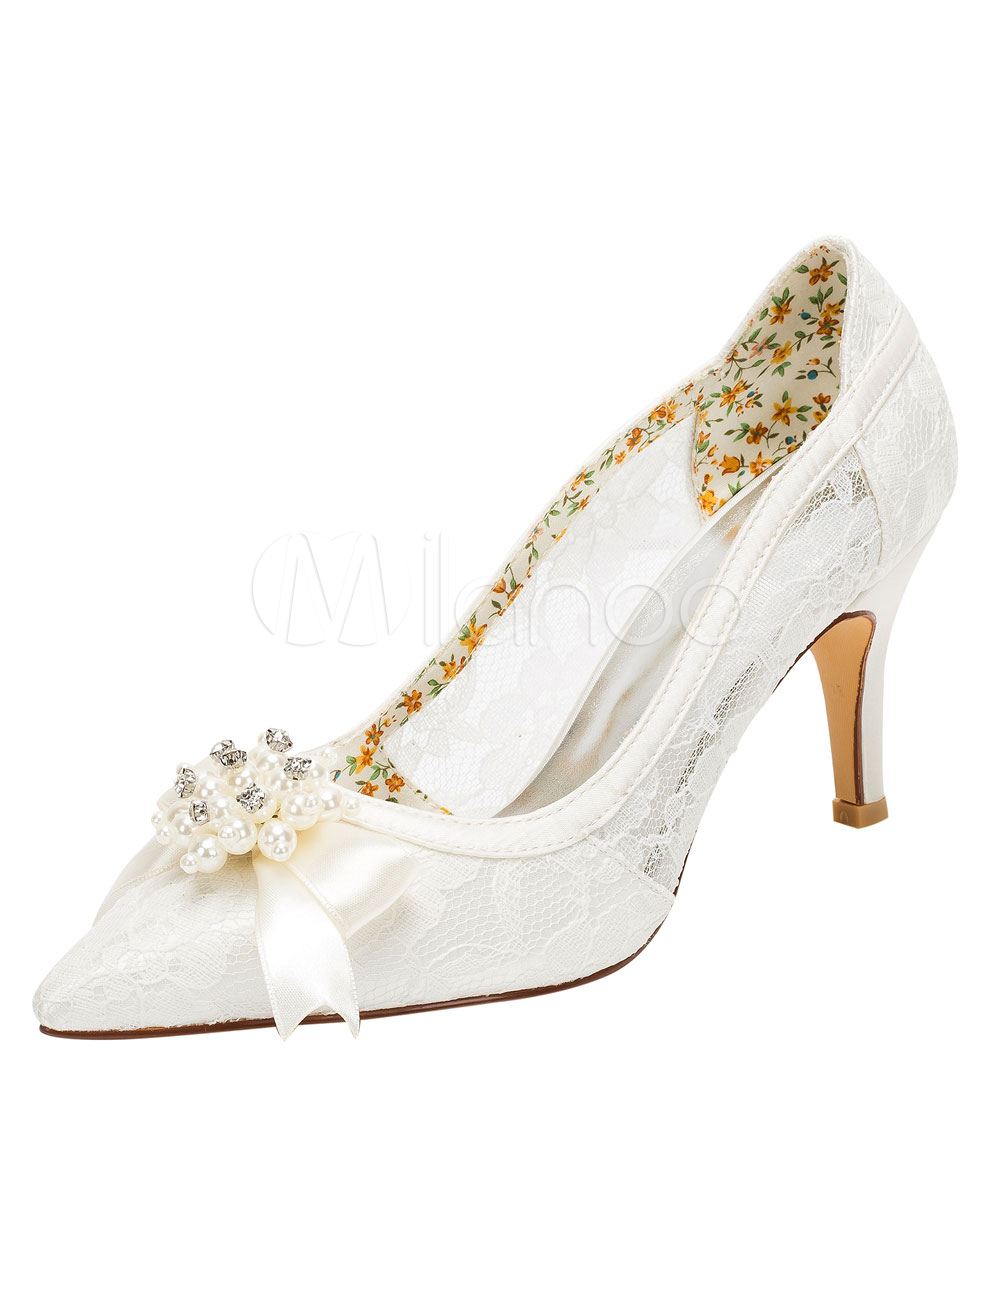 Lace Wedding Shoes Ivory High Heel Pumps Pointed Pearl Bow Slip-on Bridal Shoes